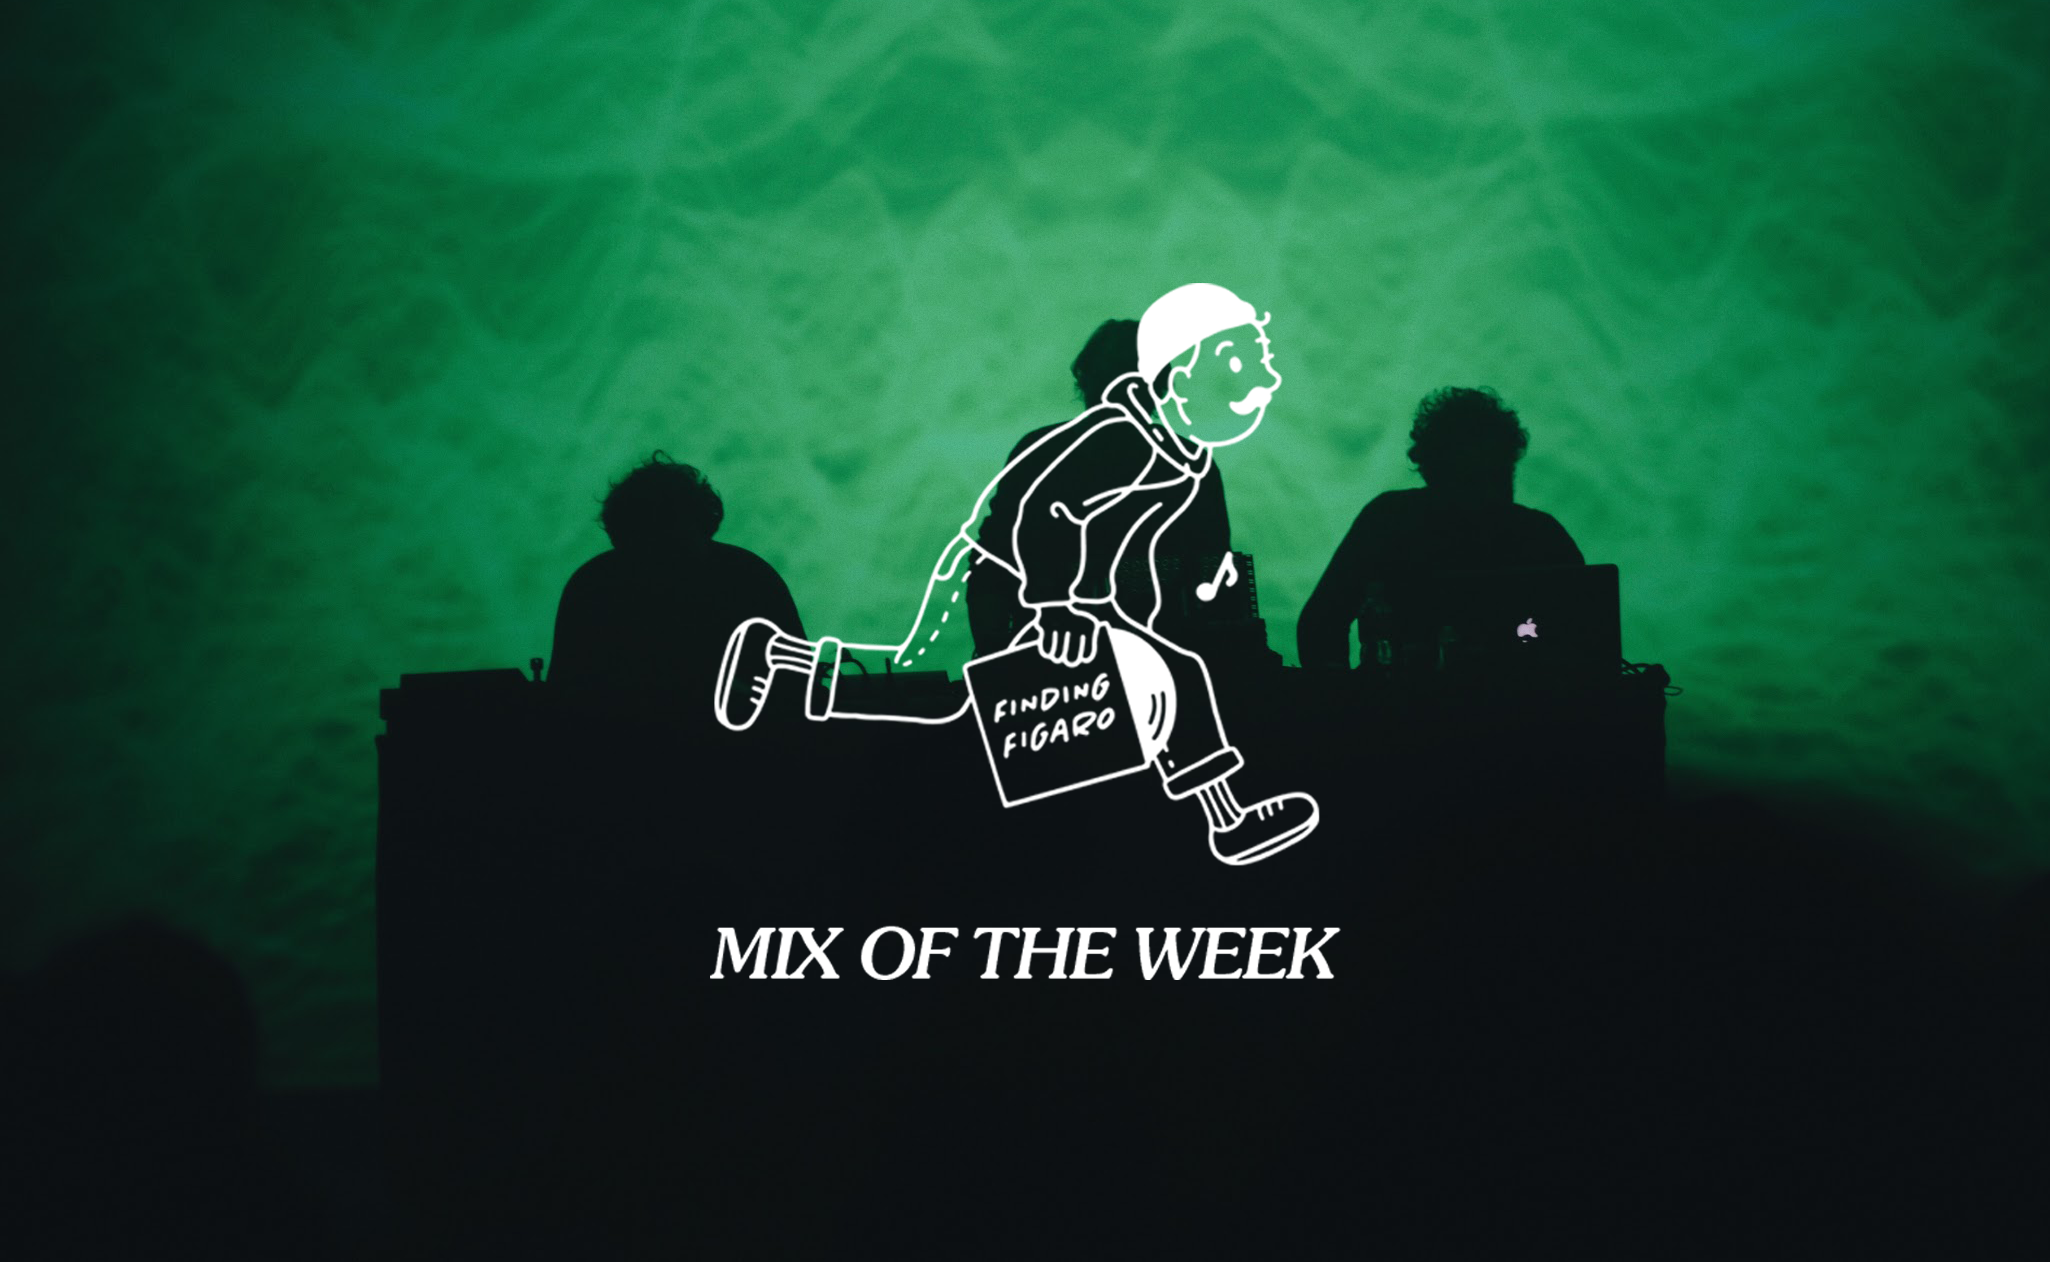 Mix of the week.png